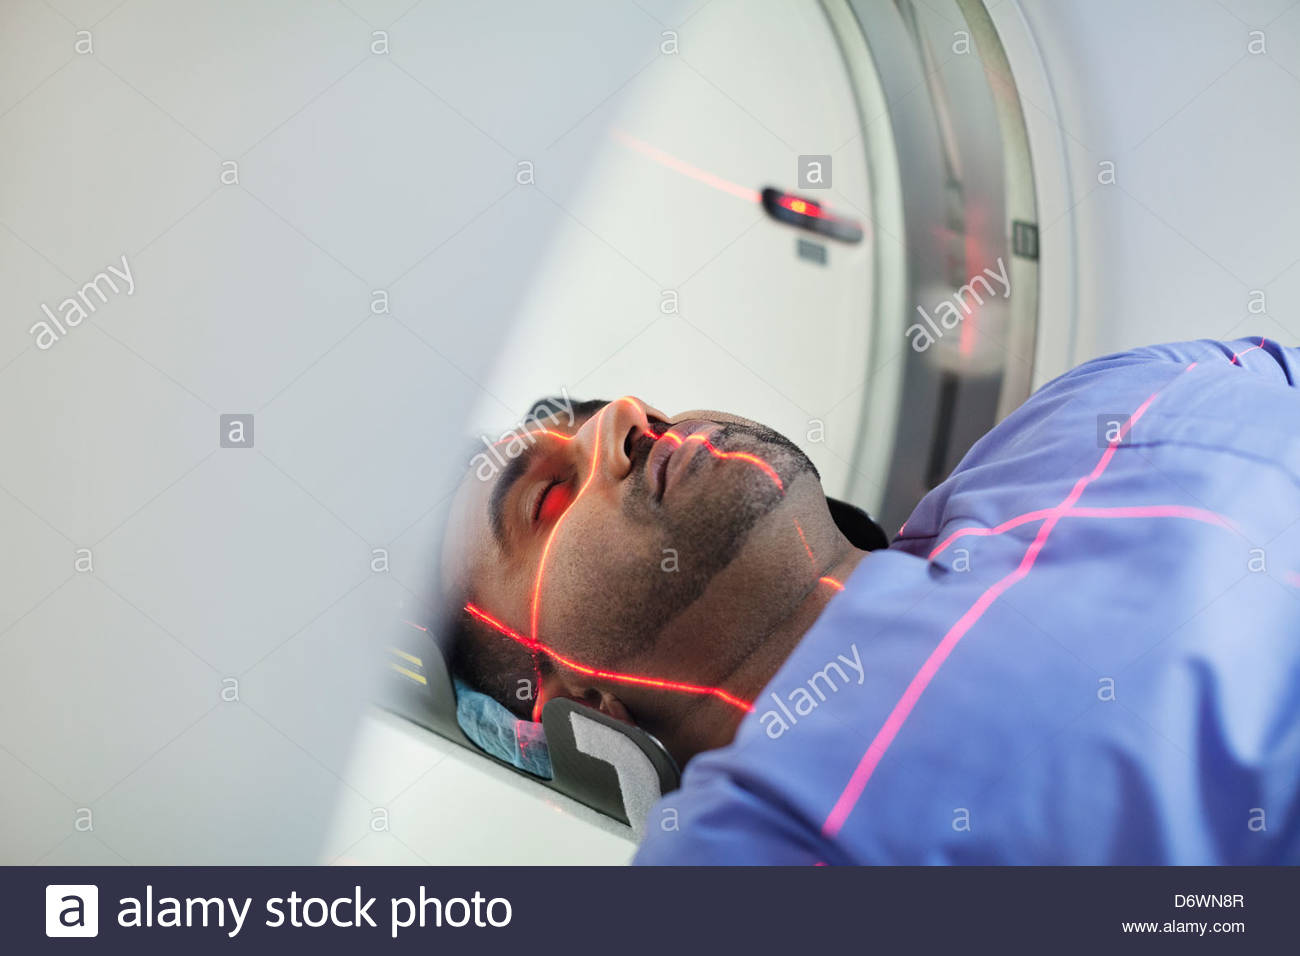 Mid adult male patient undergoing CAT scan - Stock Image